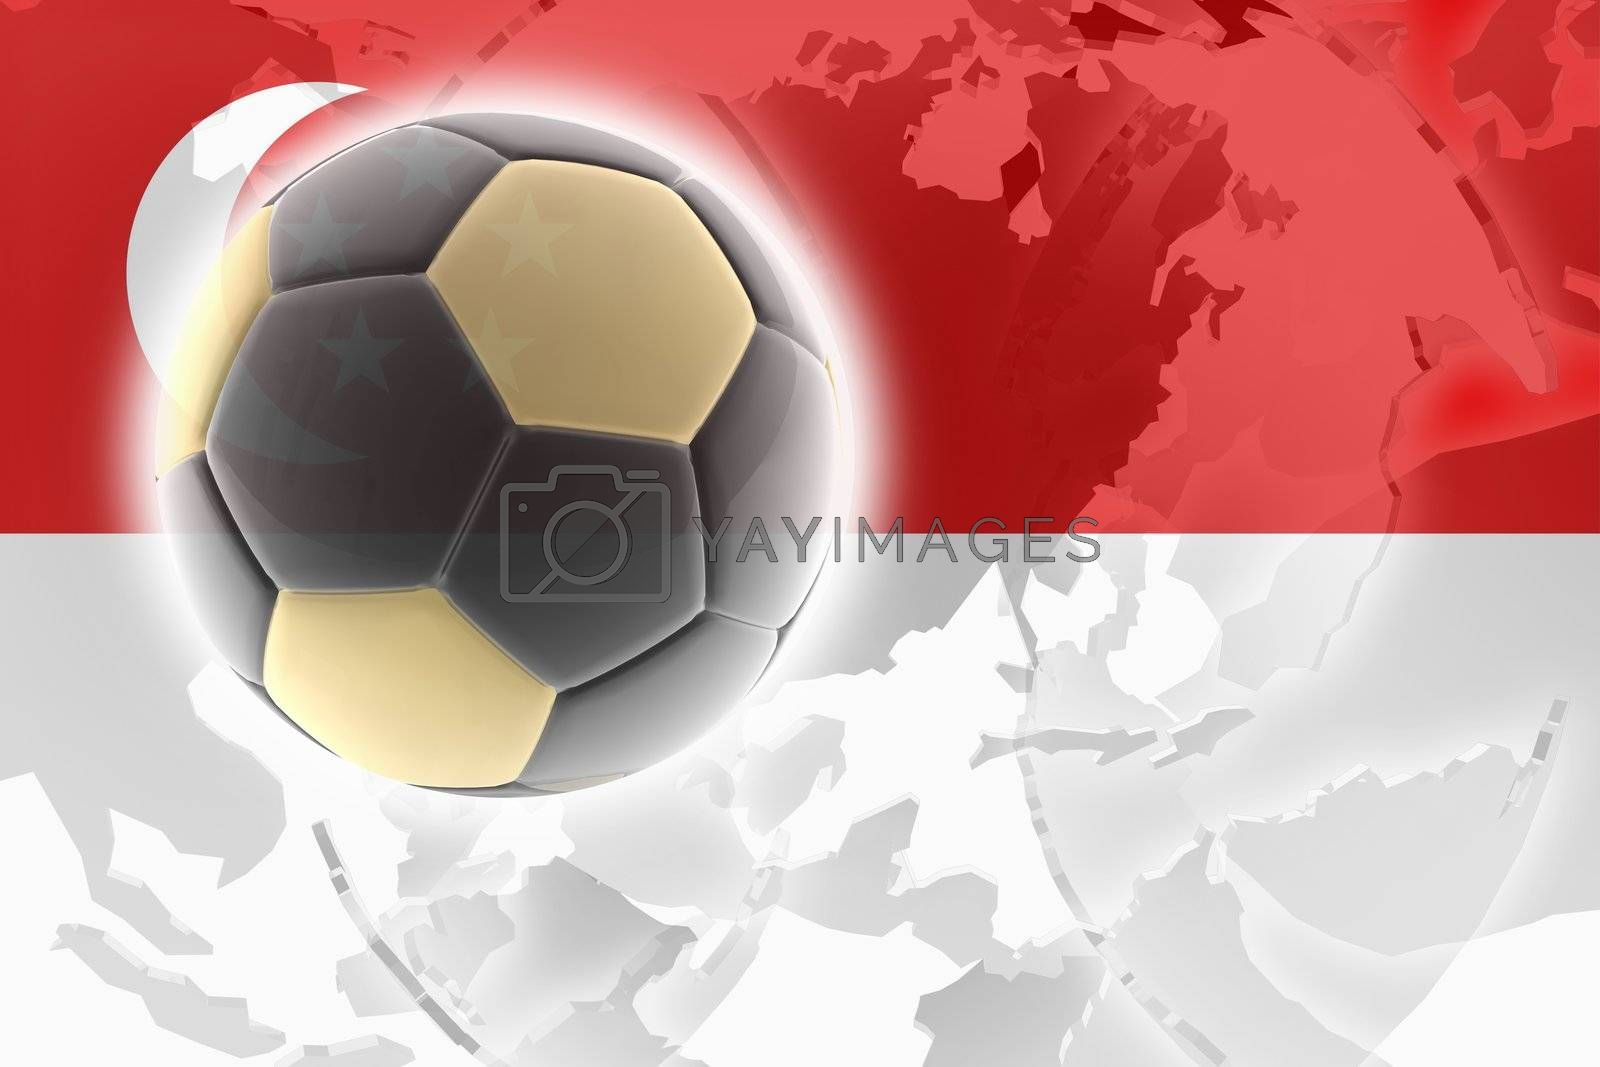 Flag of Singapore, national country symbol illustration sports soccer football